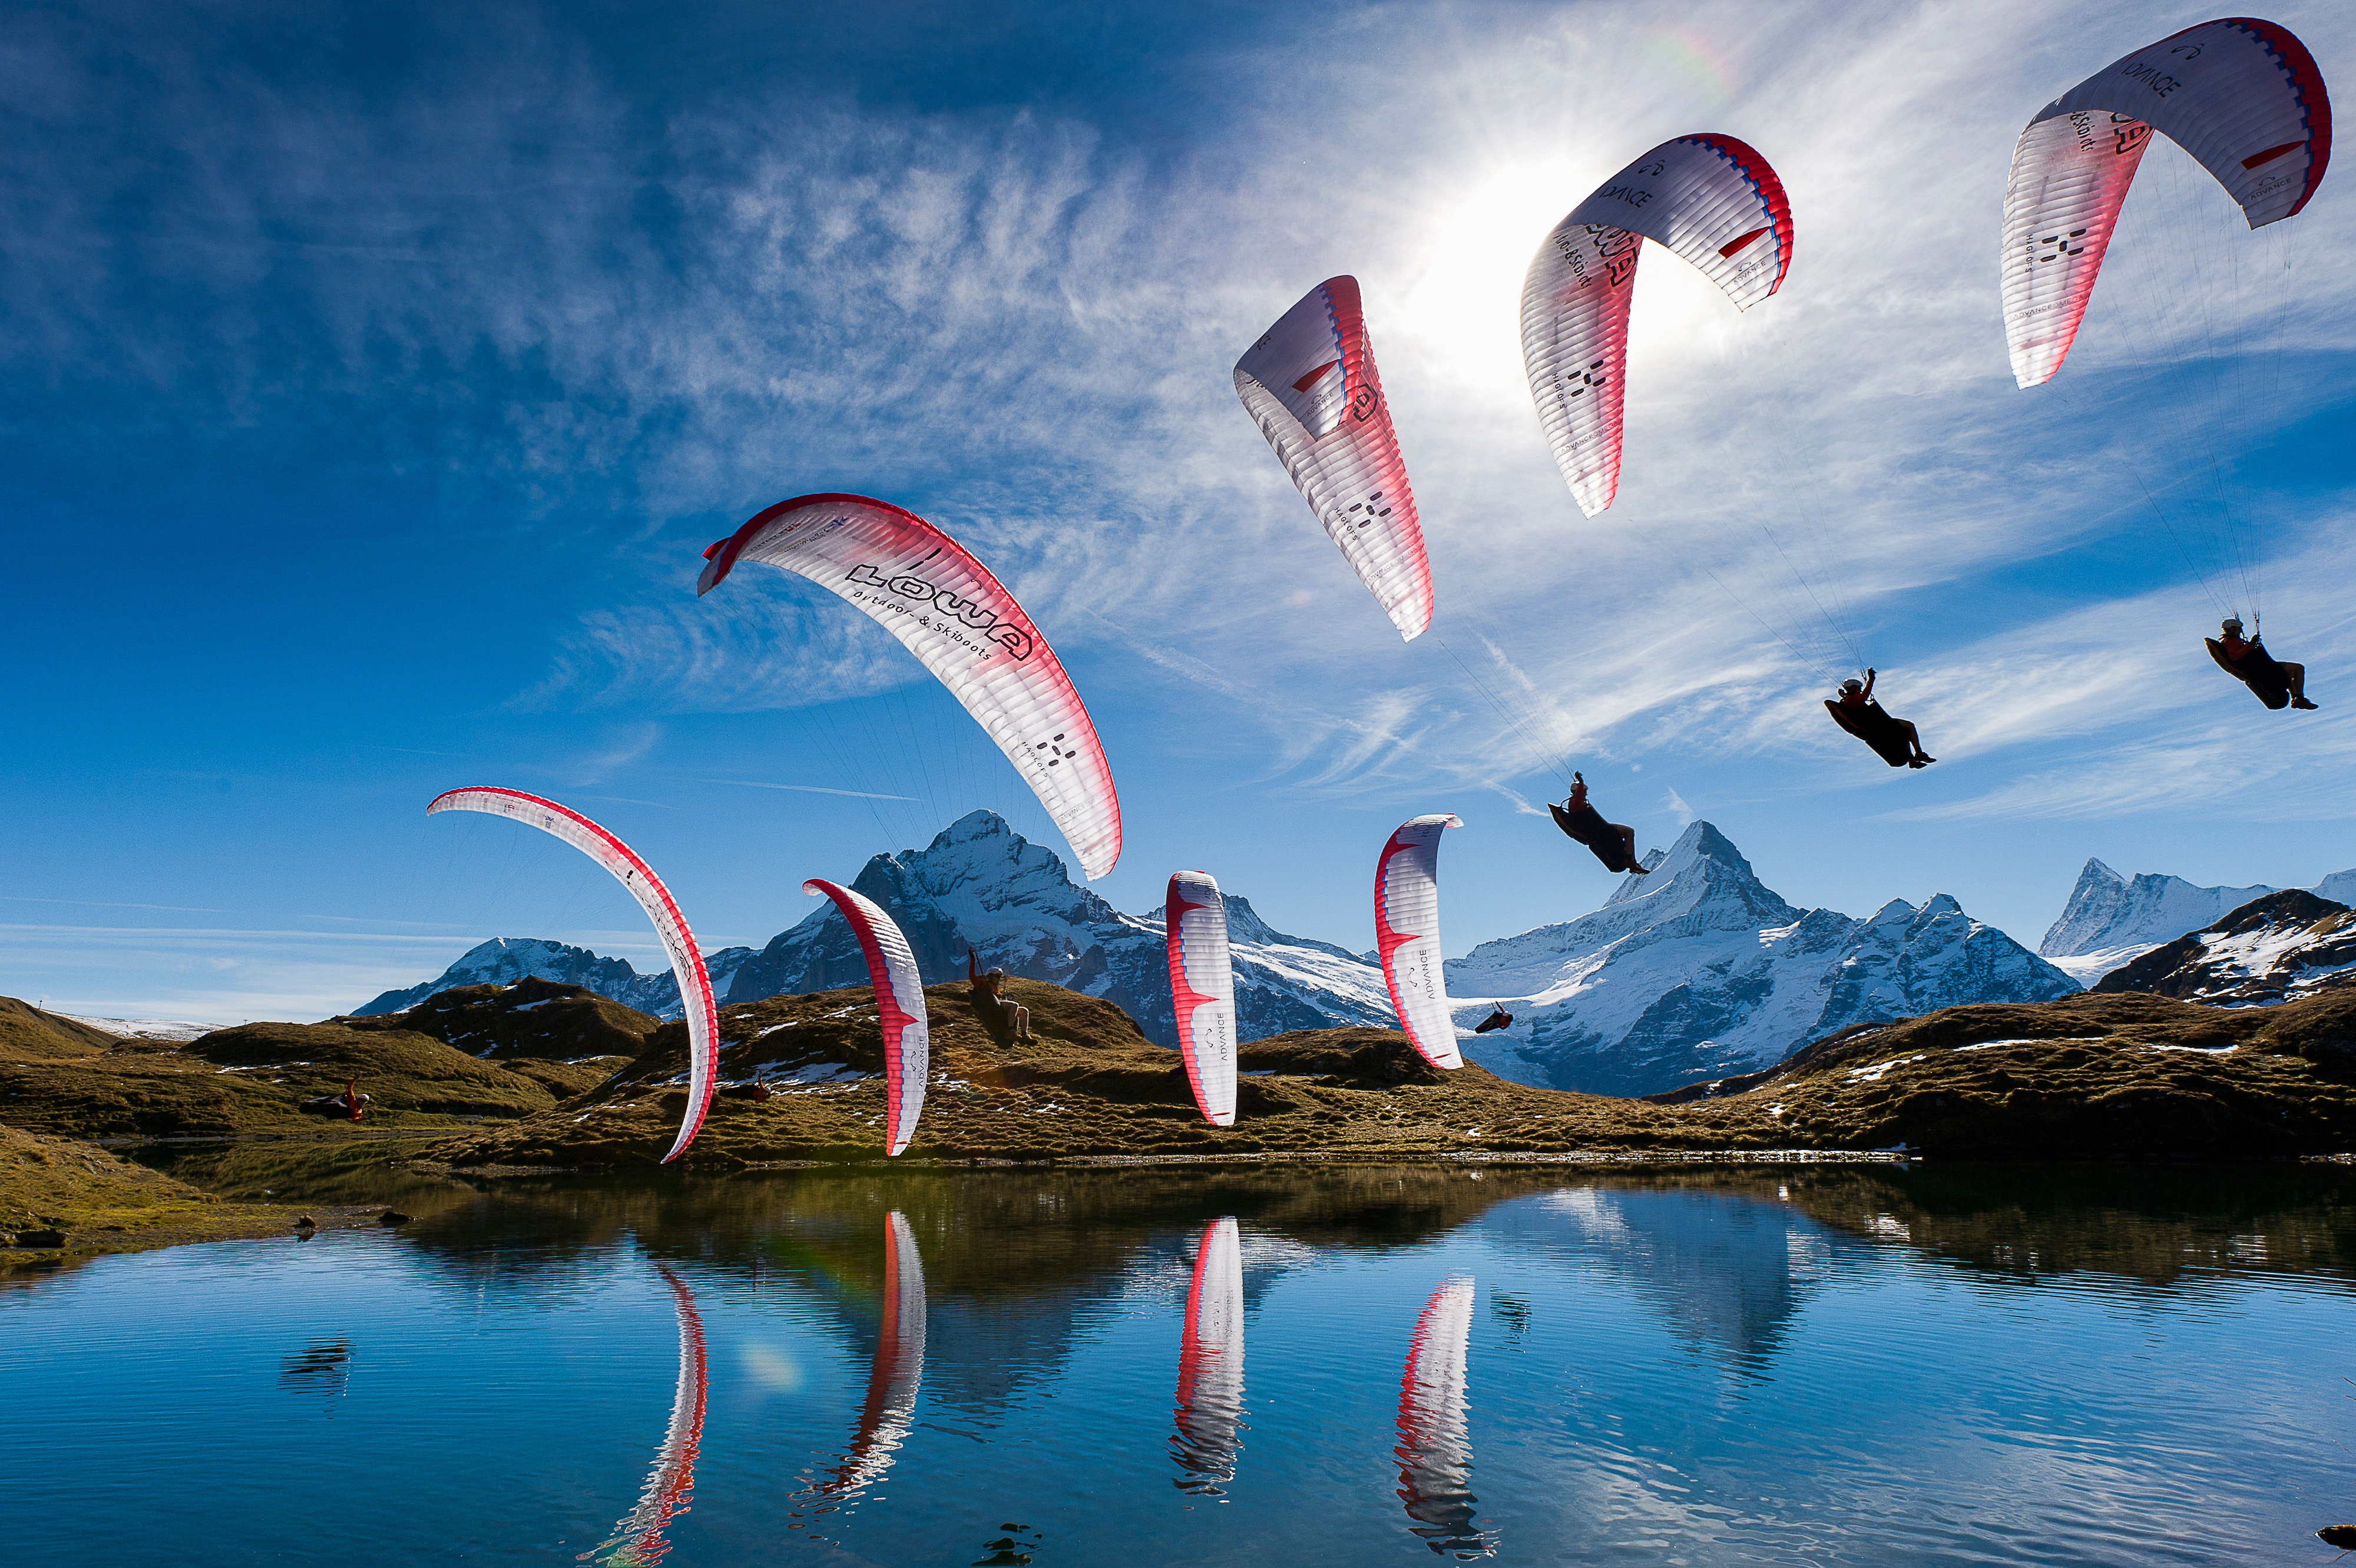 Andreas Busslinger, Category finalist 2013: Sequence